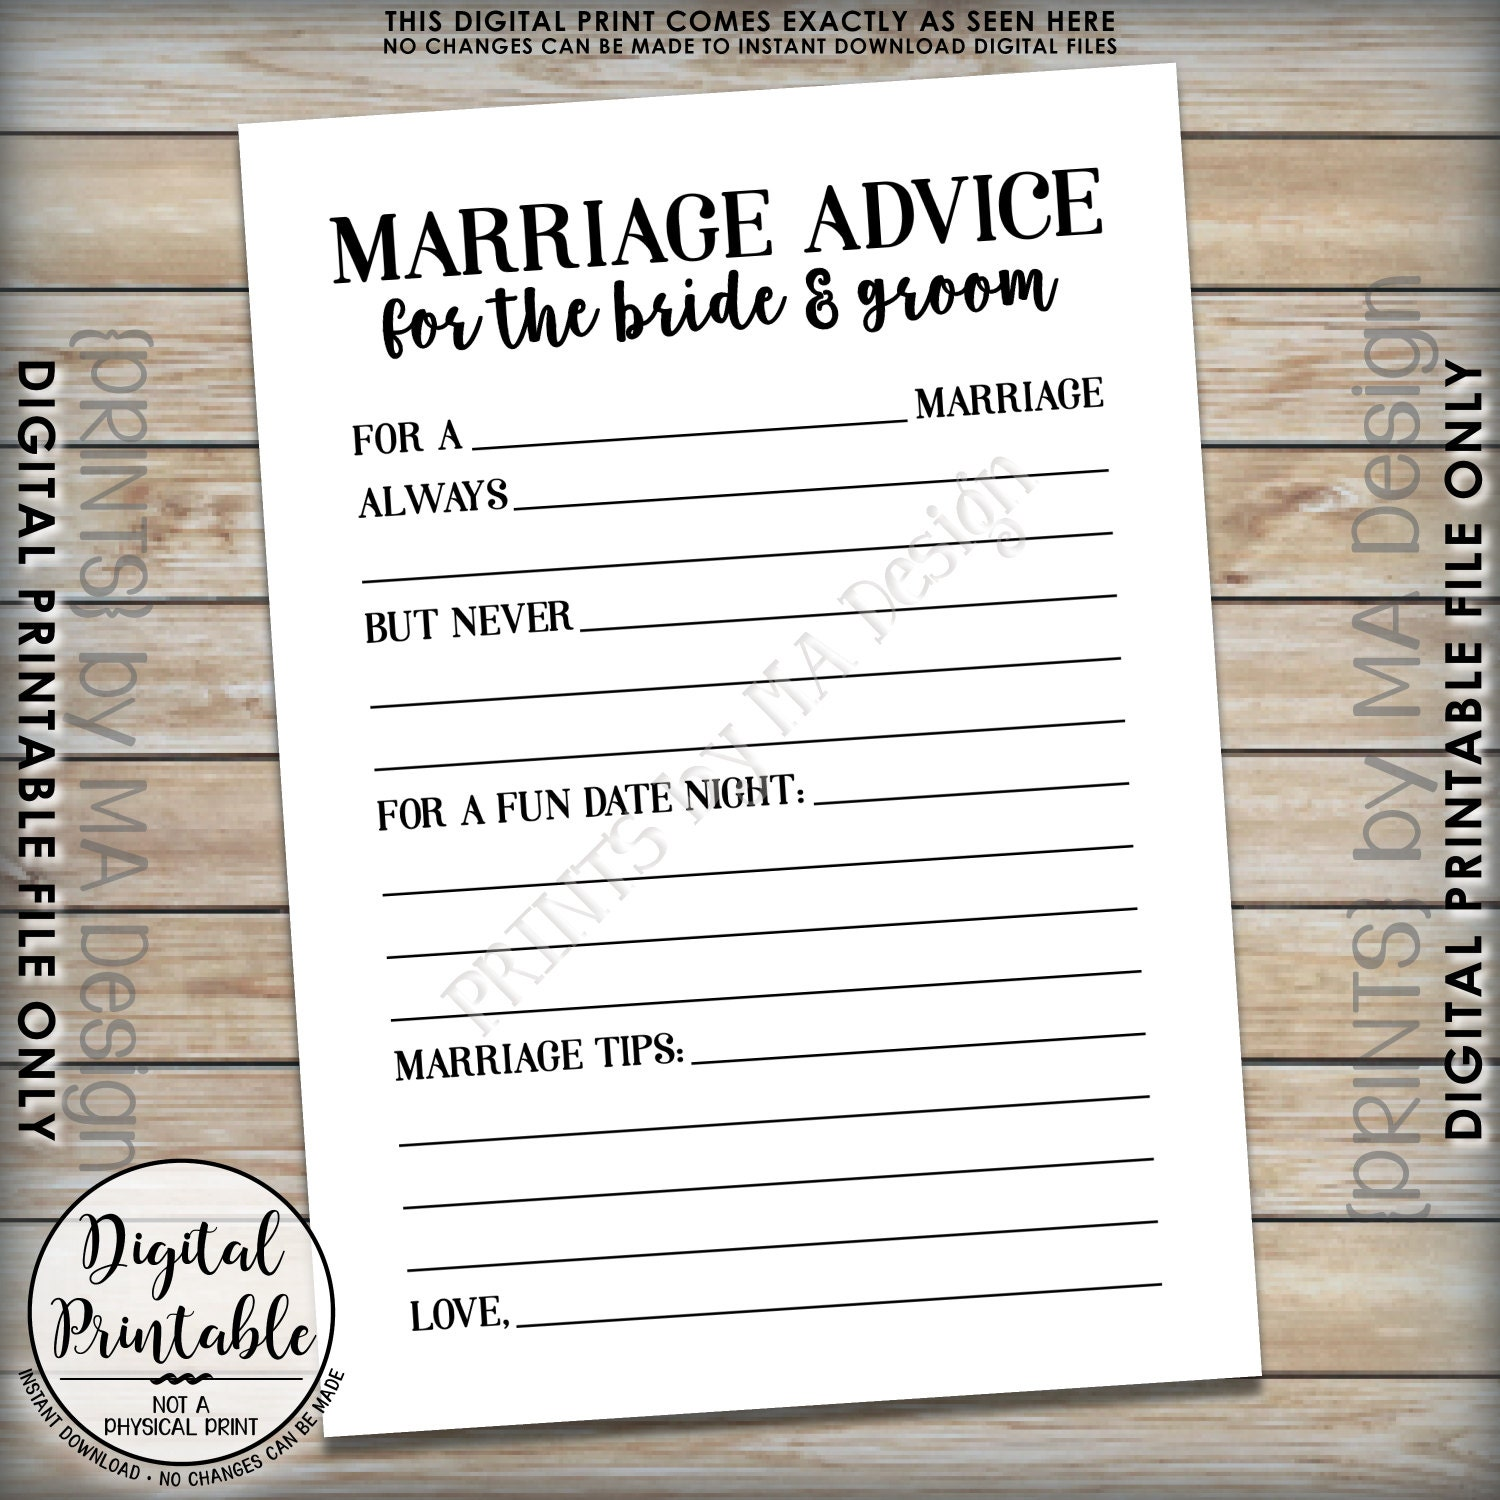 Wedding Advice: Marriage Advice Cards, Bride & Groom Advice, Wedding